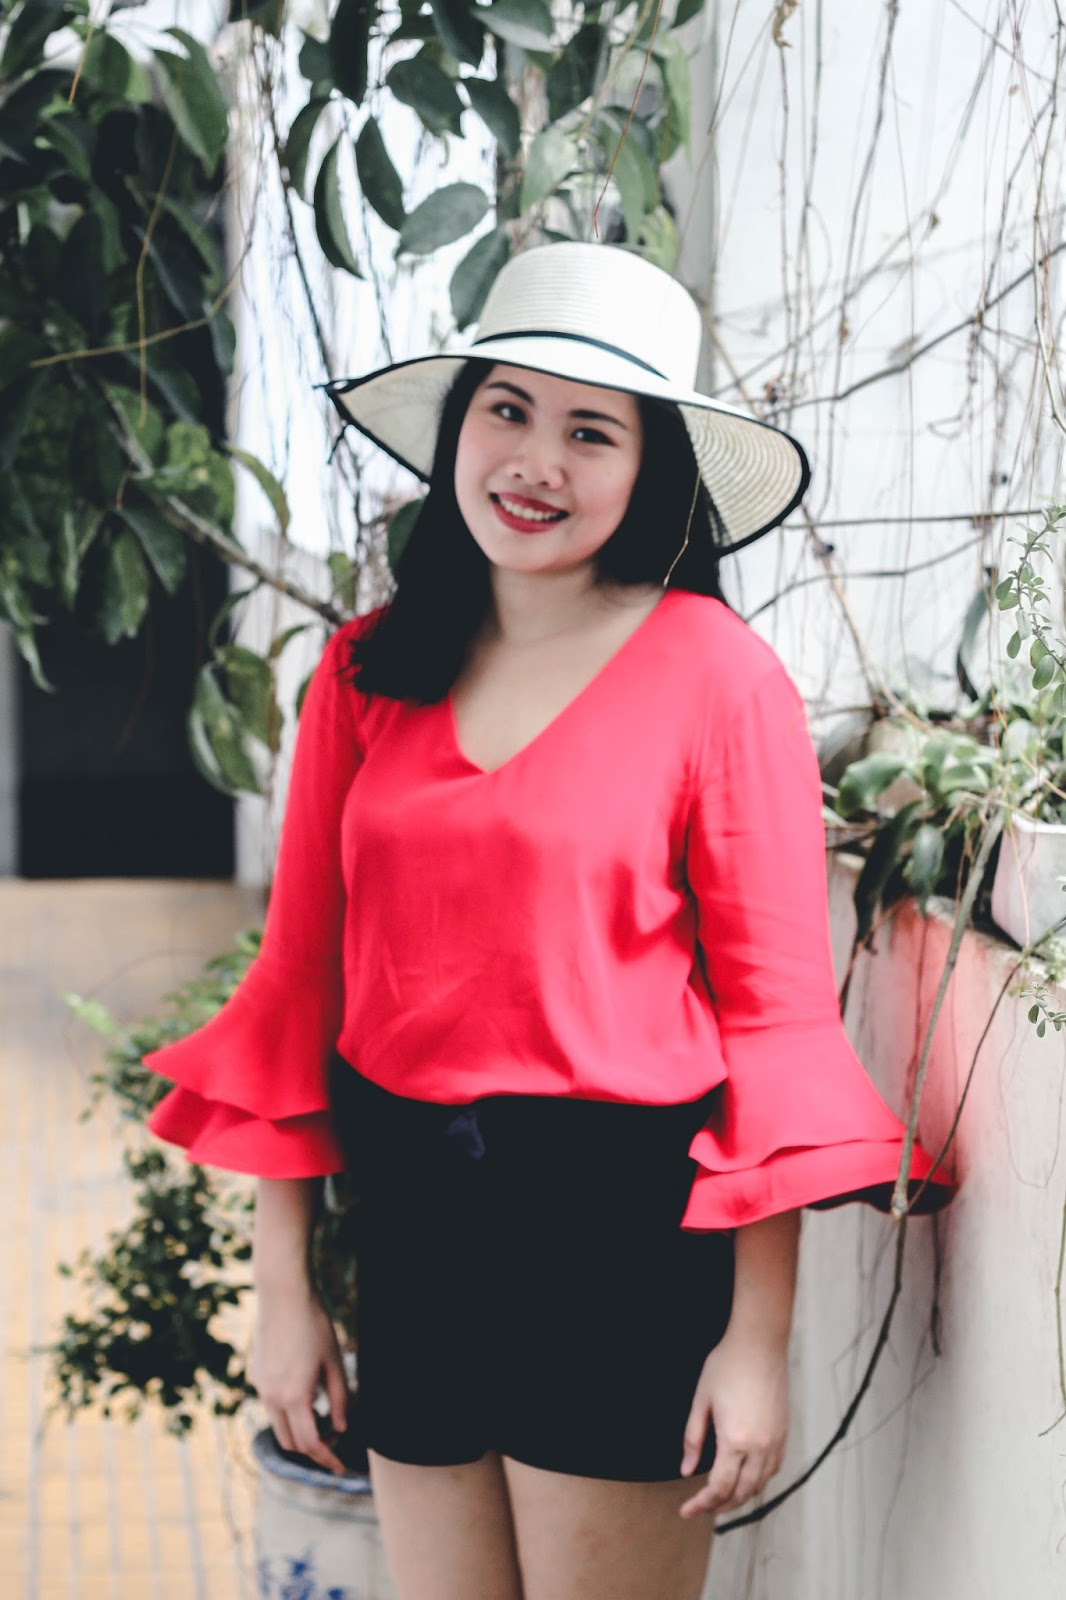 singapore blogger look book stylexstyle street photography outfit zara trend travel summer idea